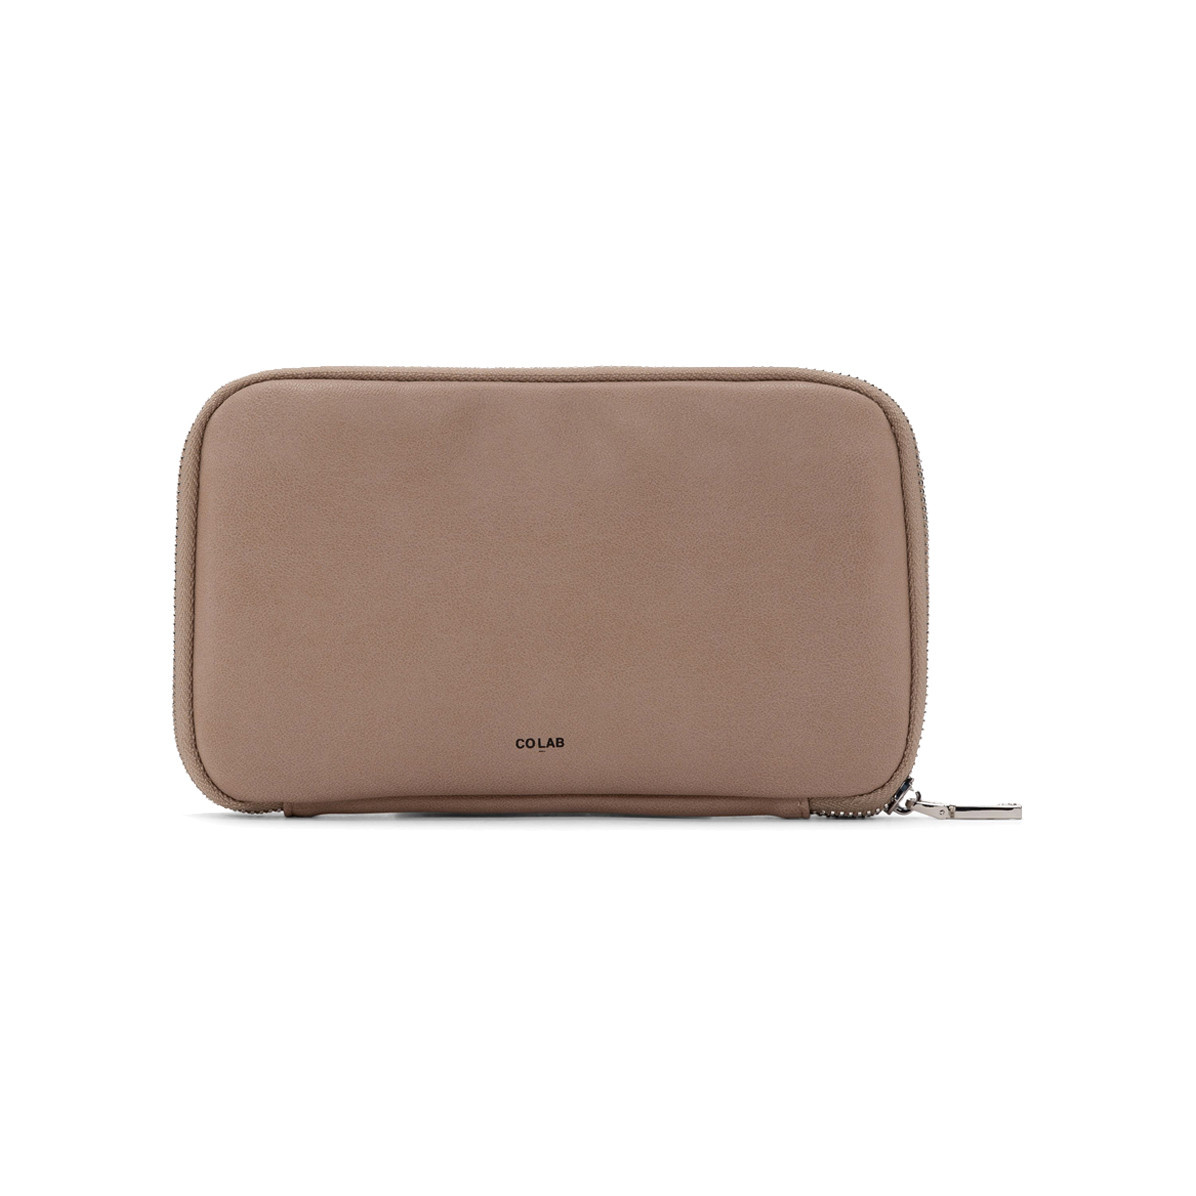 Colab Colab Smooth World Vegan Leather Wallet Mushroom